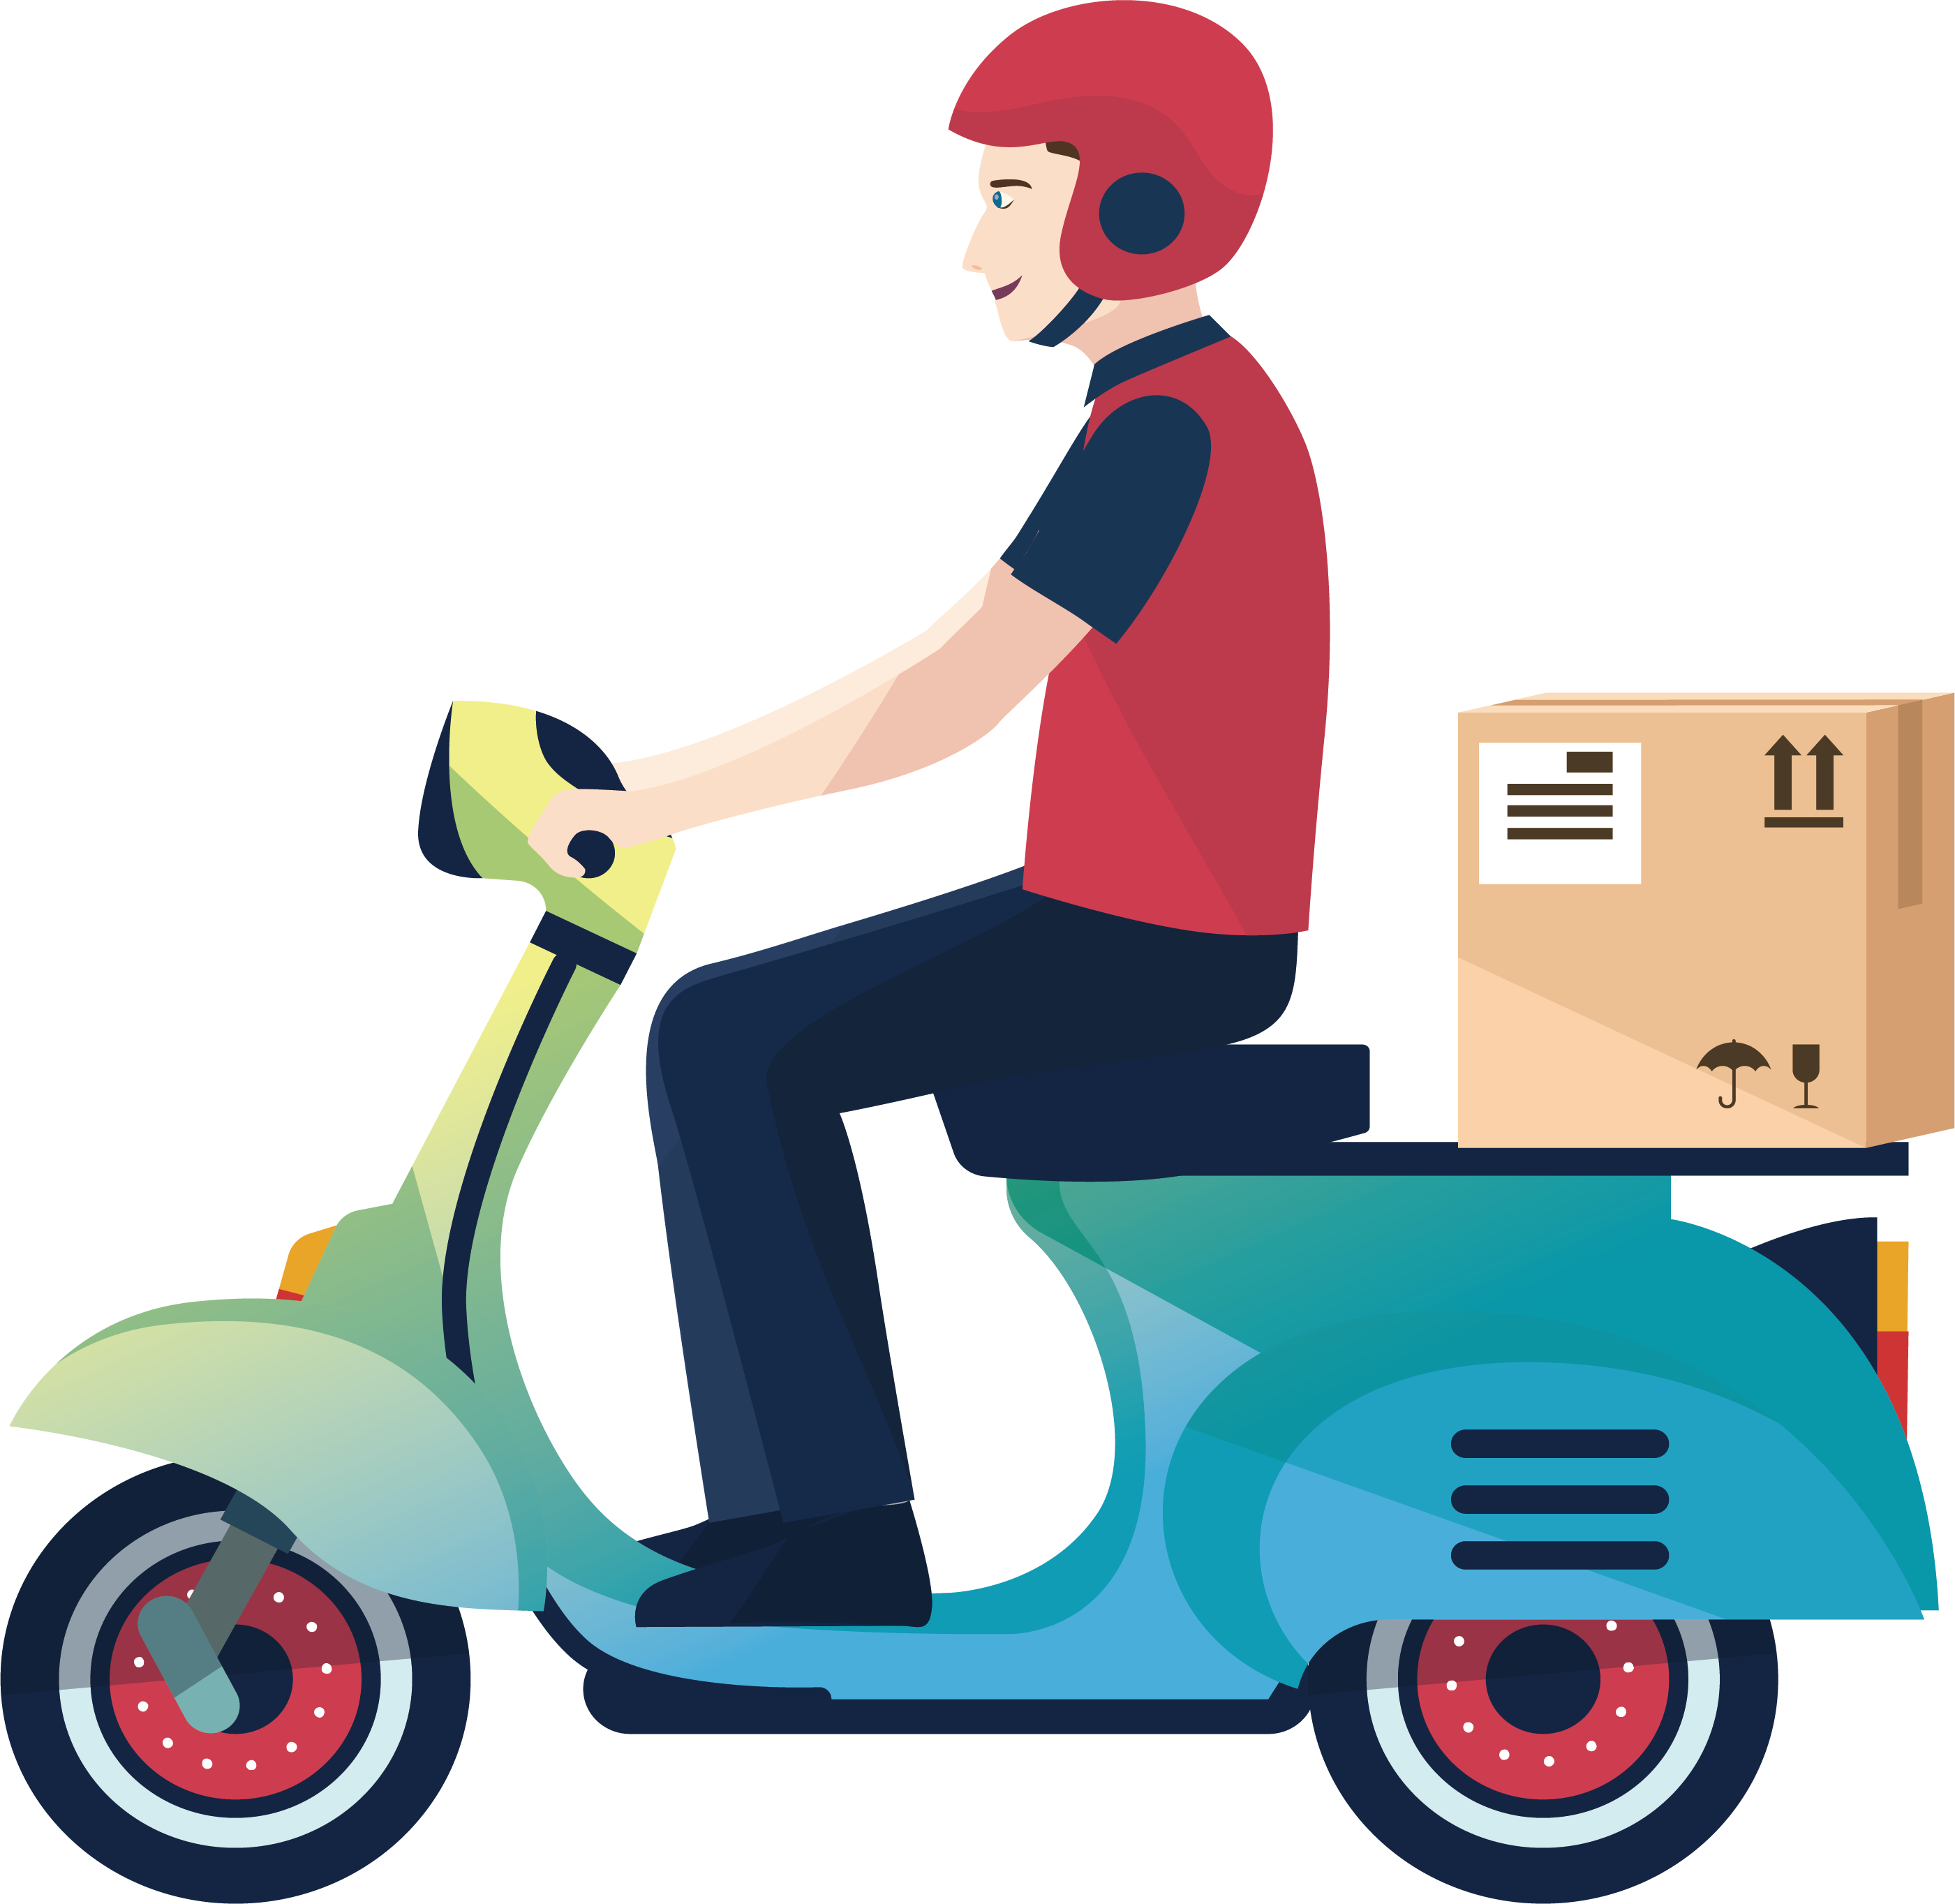 Motorcycle courier logistics service. Scooter clipart delivery scooter